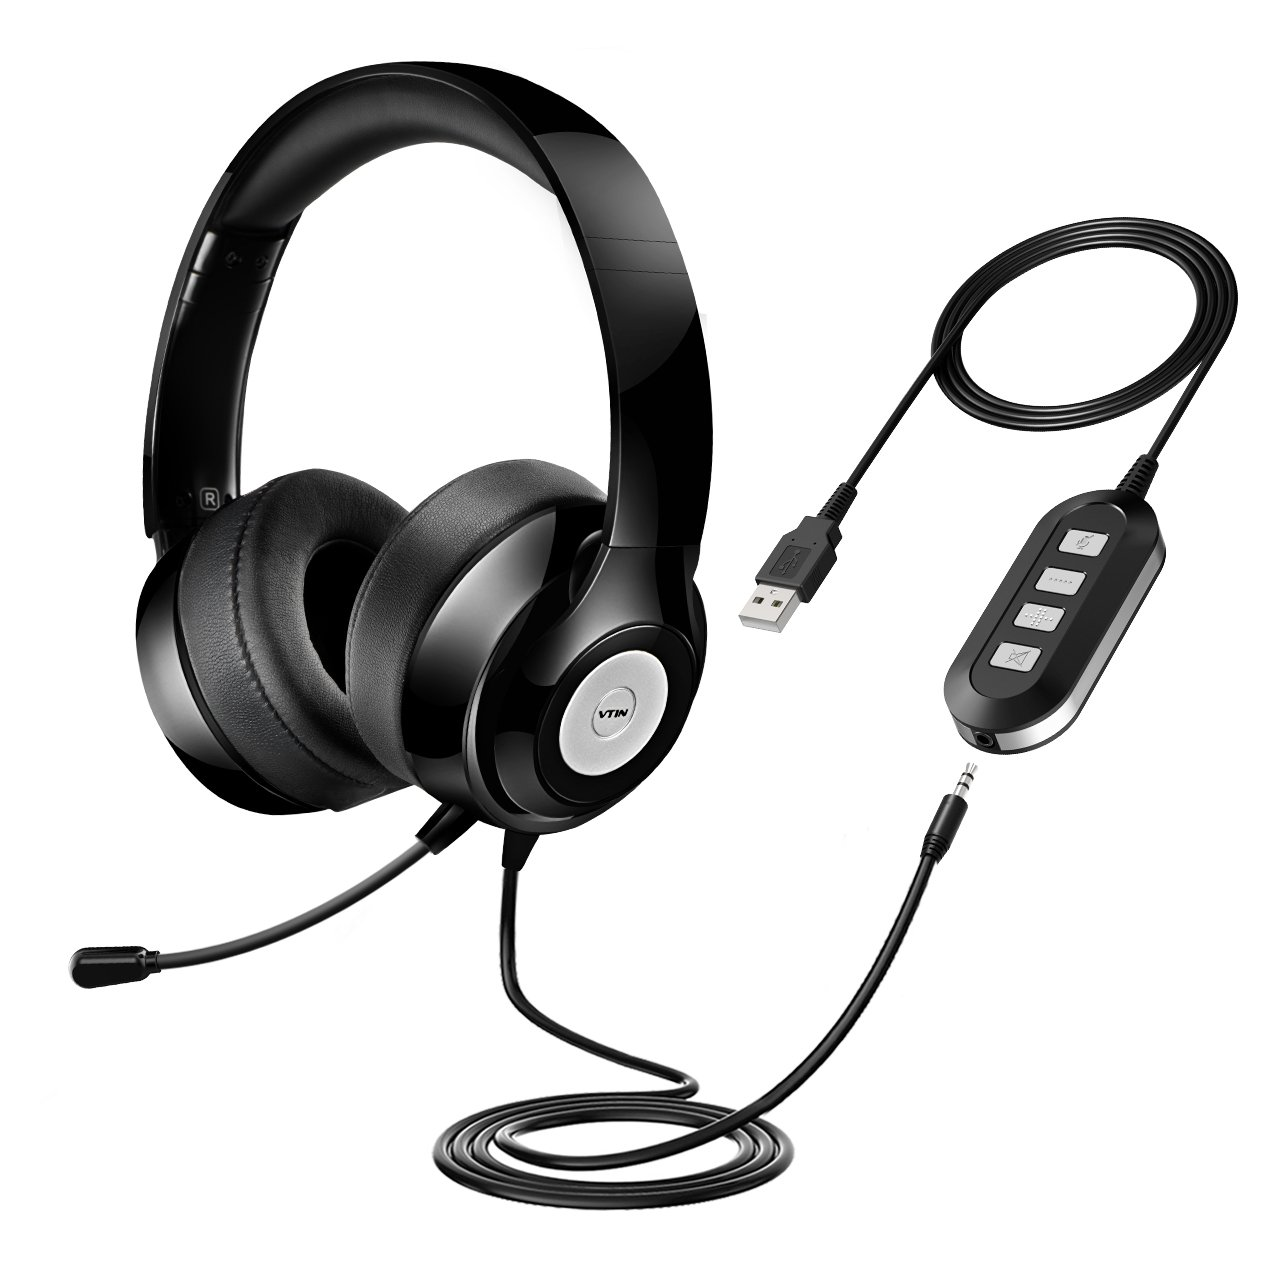 edfc9d9c227 See all customer reviews · Vtin Headset with Microphone, USB Headset/ 3.5mm  Computer Headphone Headset Noise Cancelling and